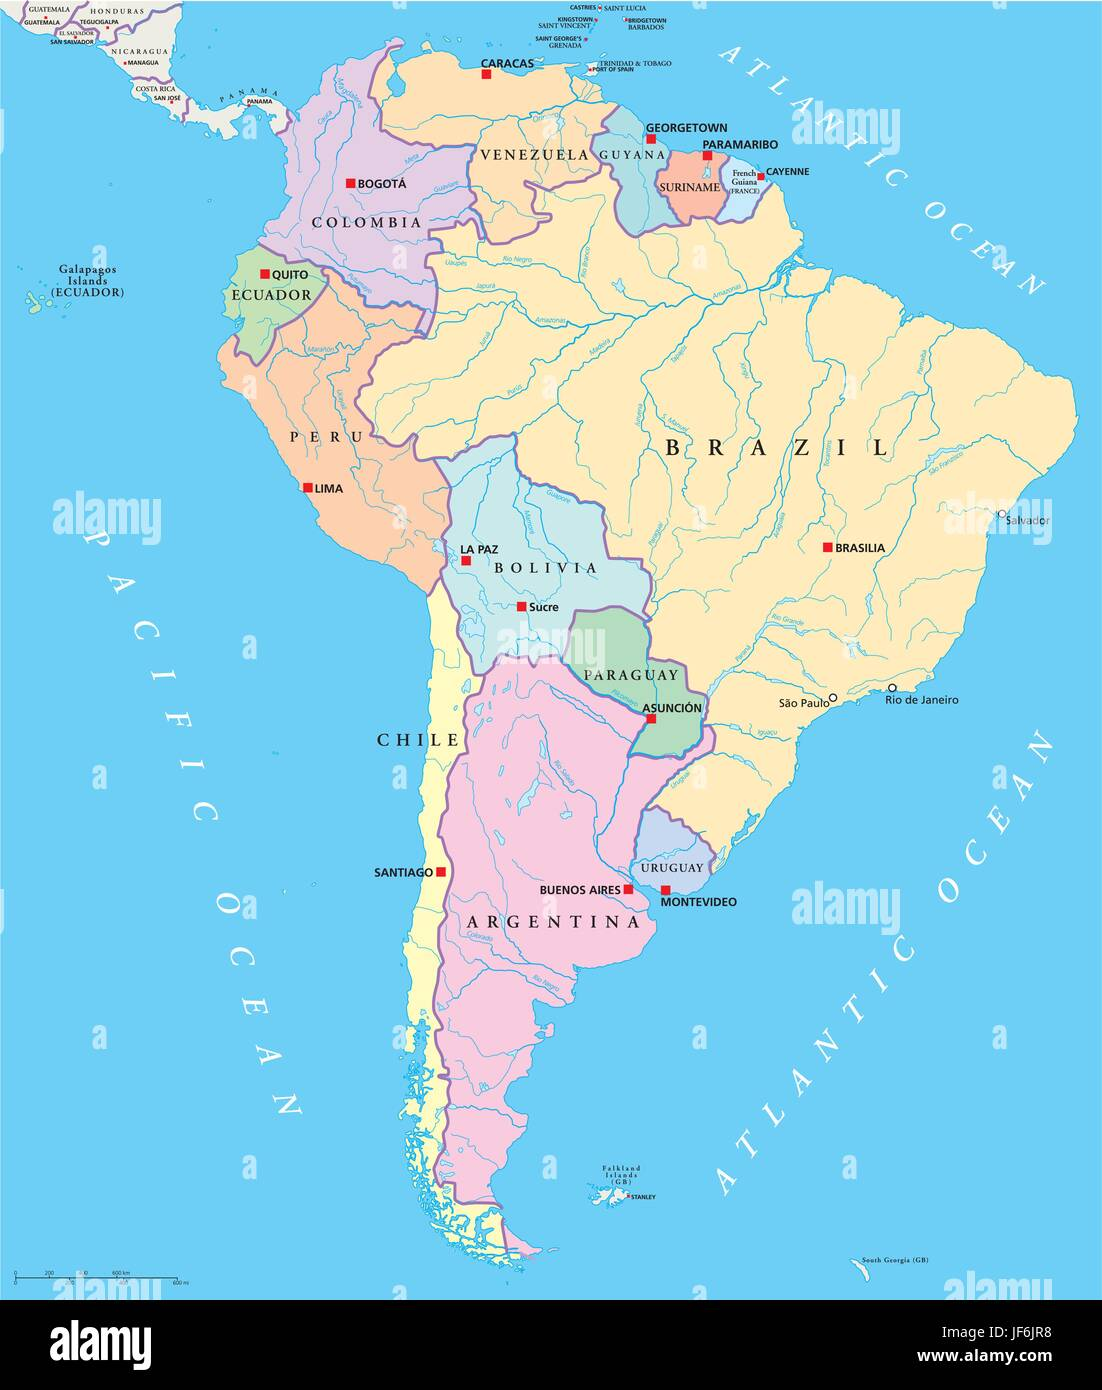 Political America South America Continent States Map Atlas